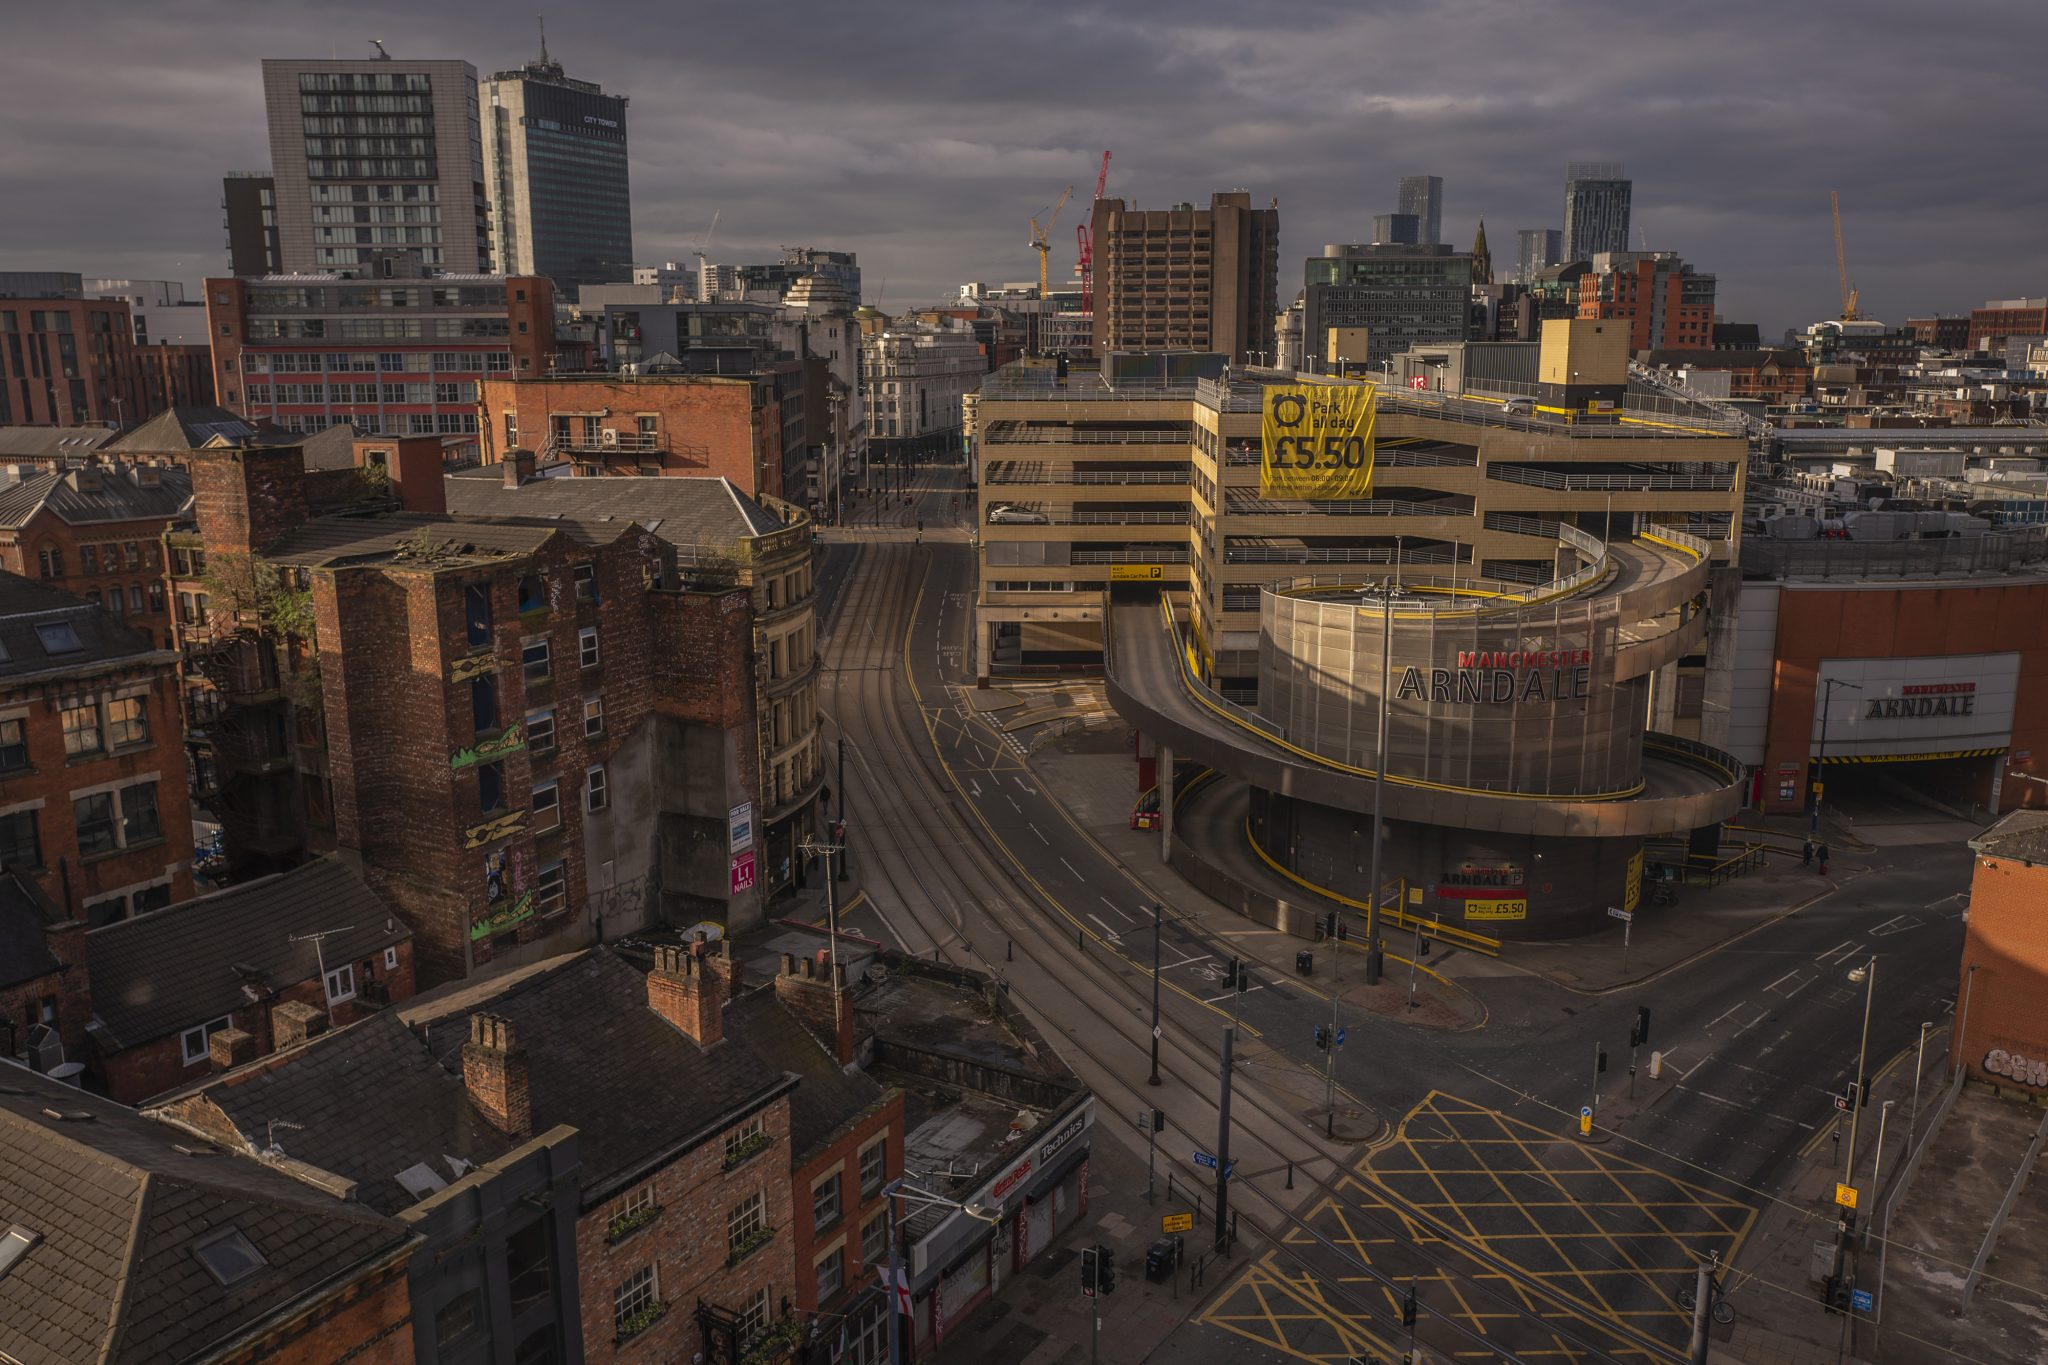 Manchester City Centre at sunset